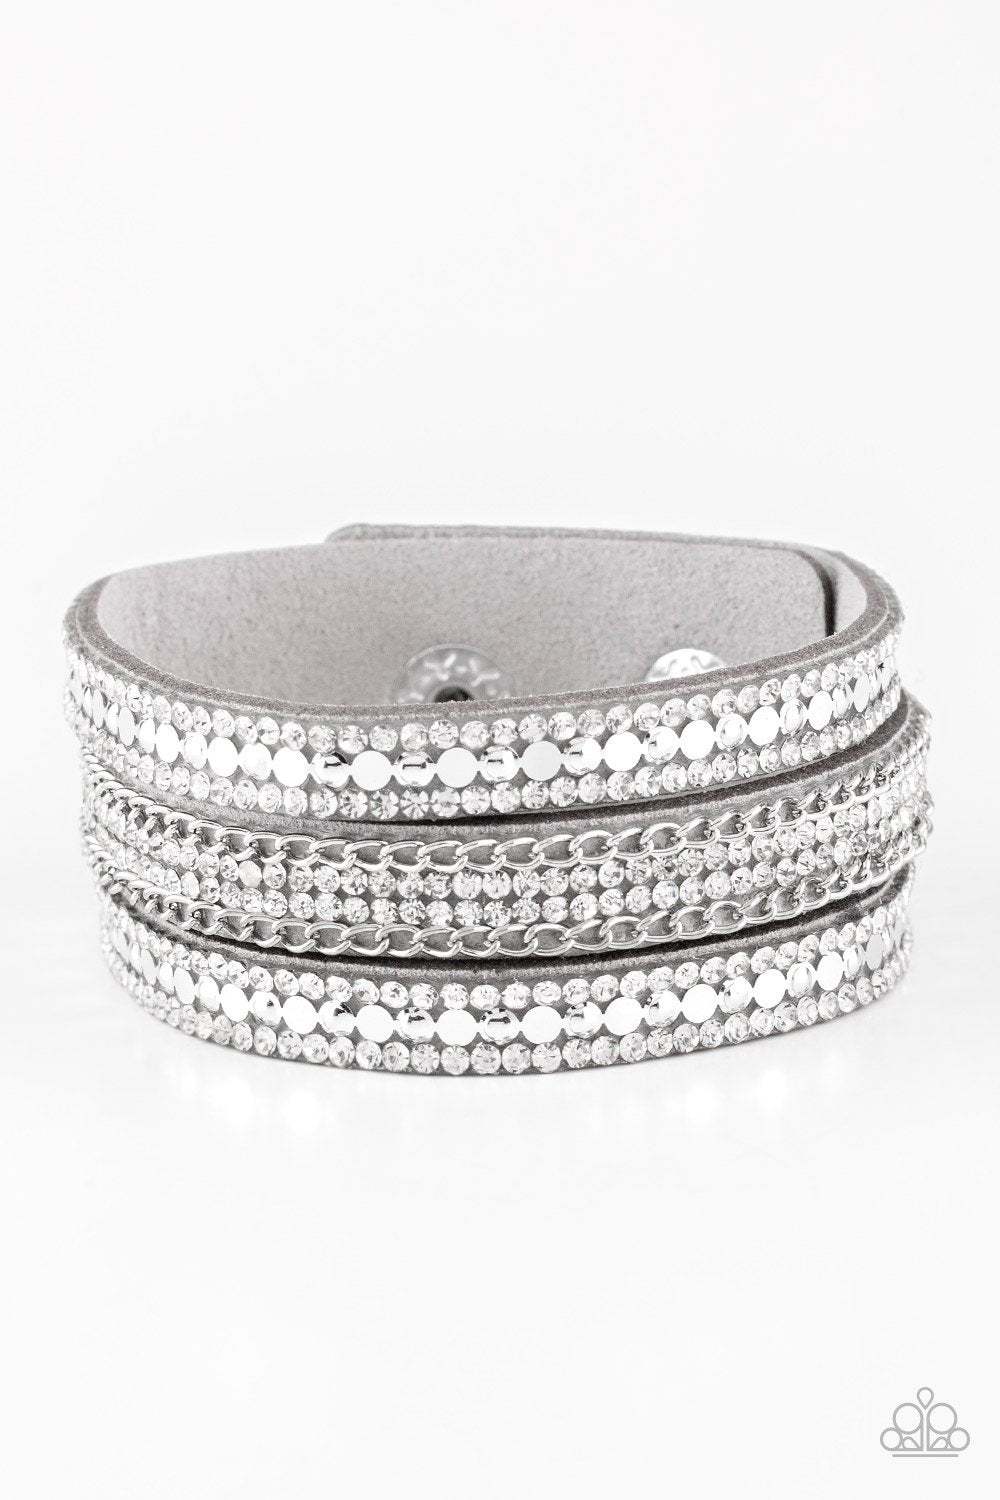 Paparazzi Accessories ~ Fashion Fanatic - Silver